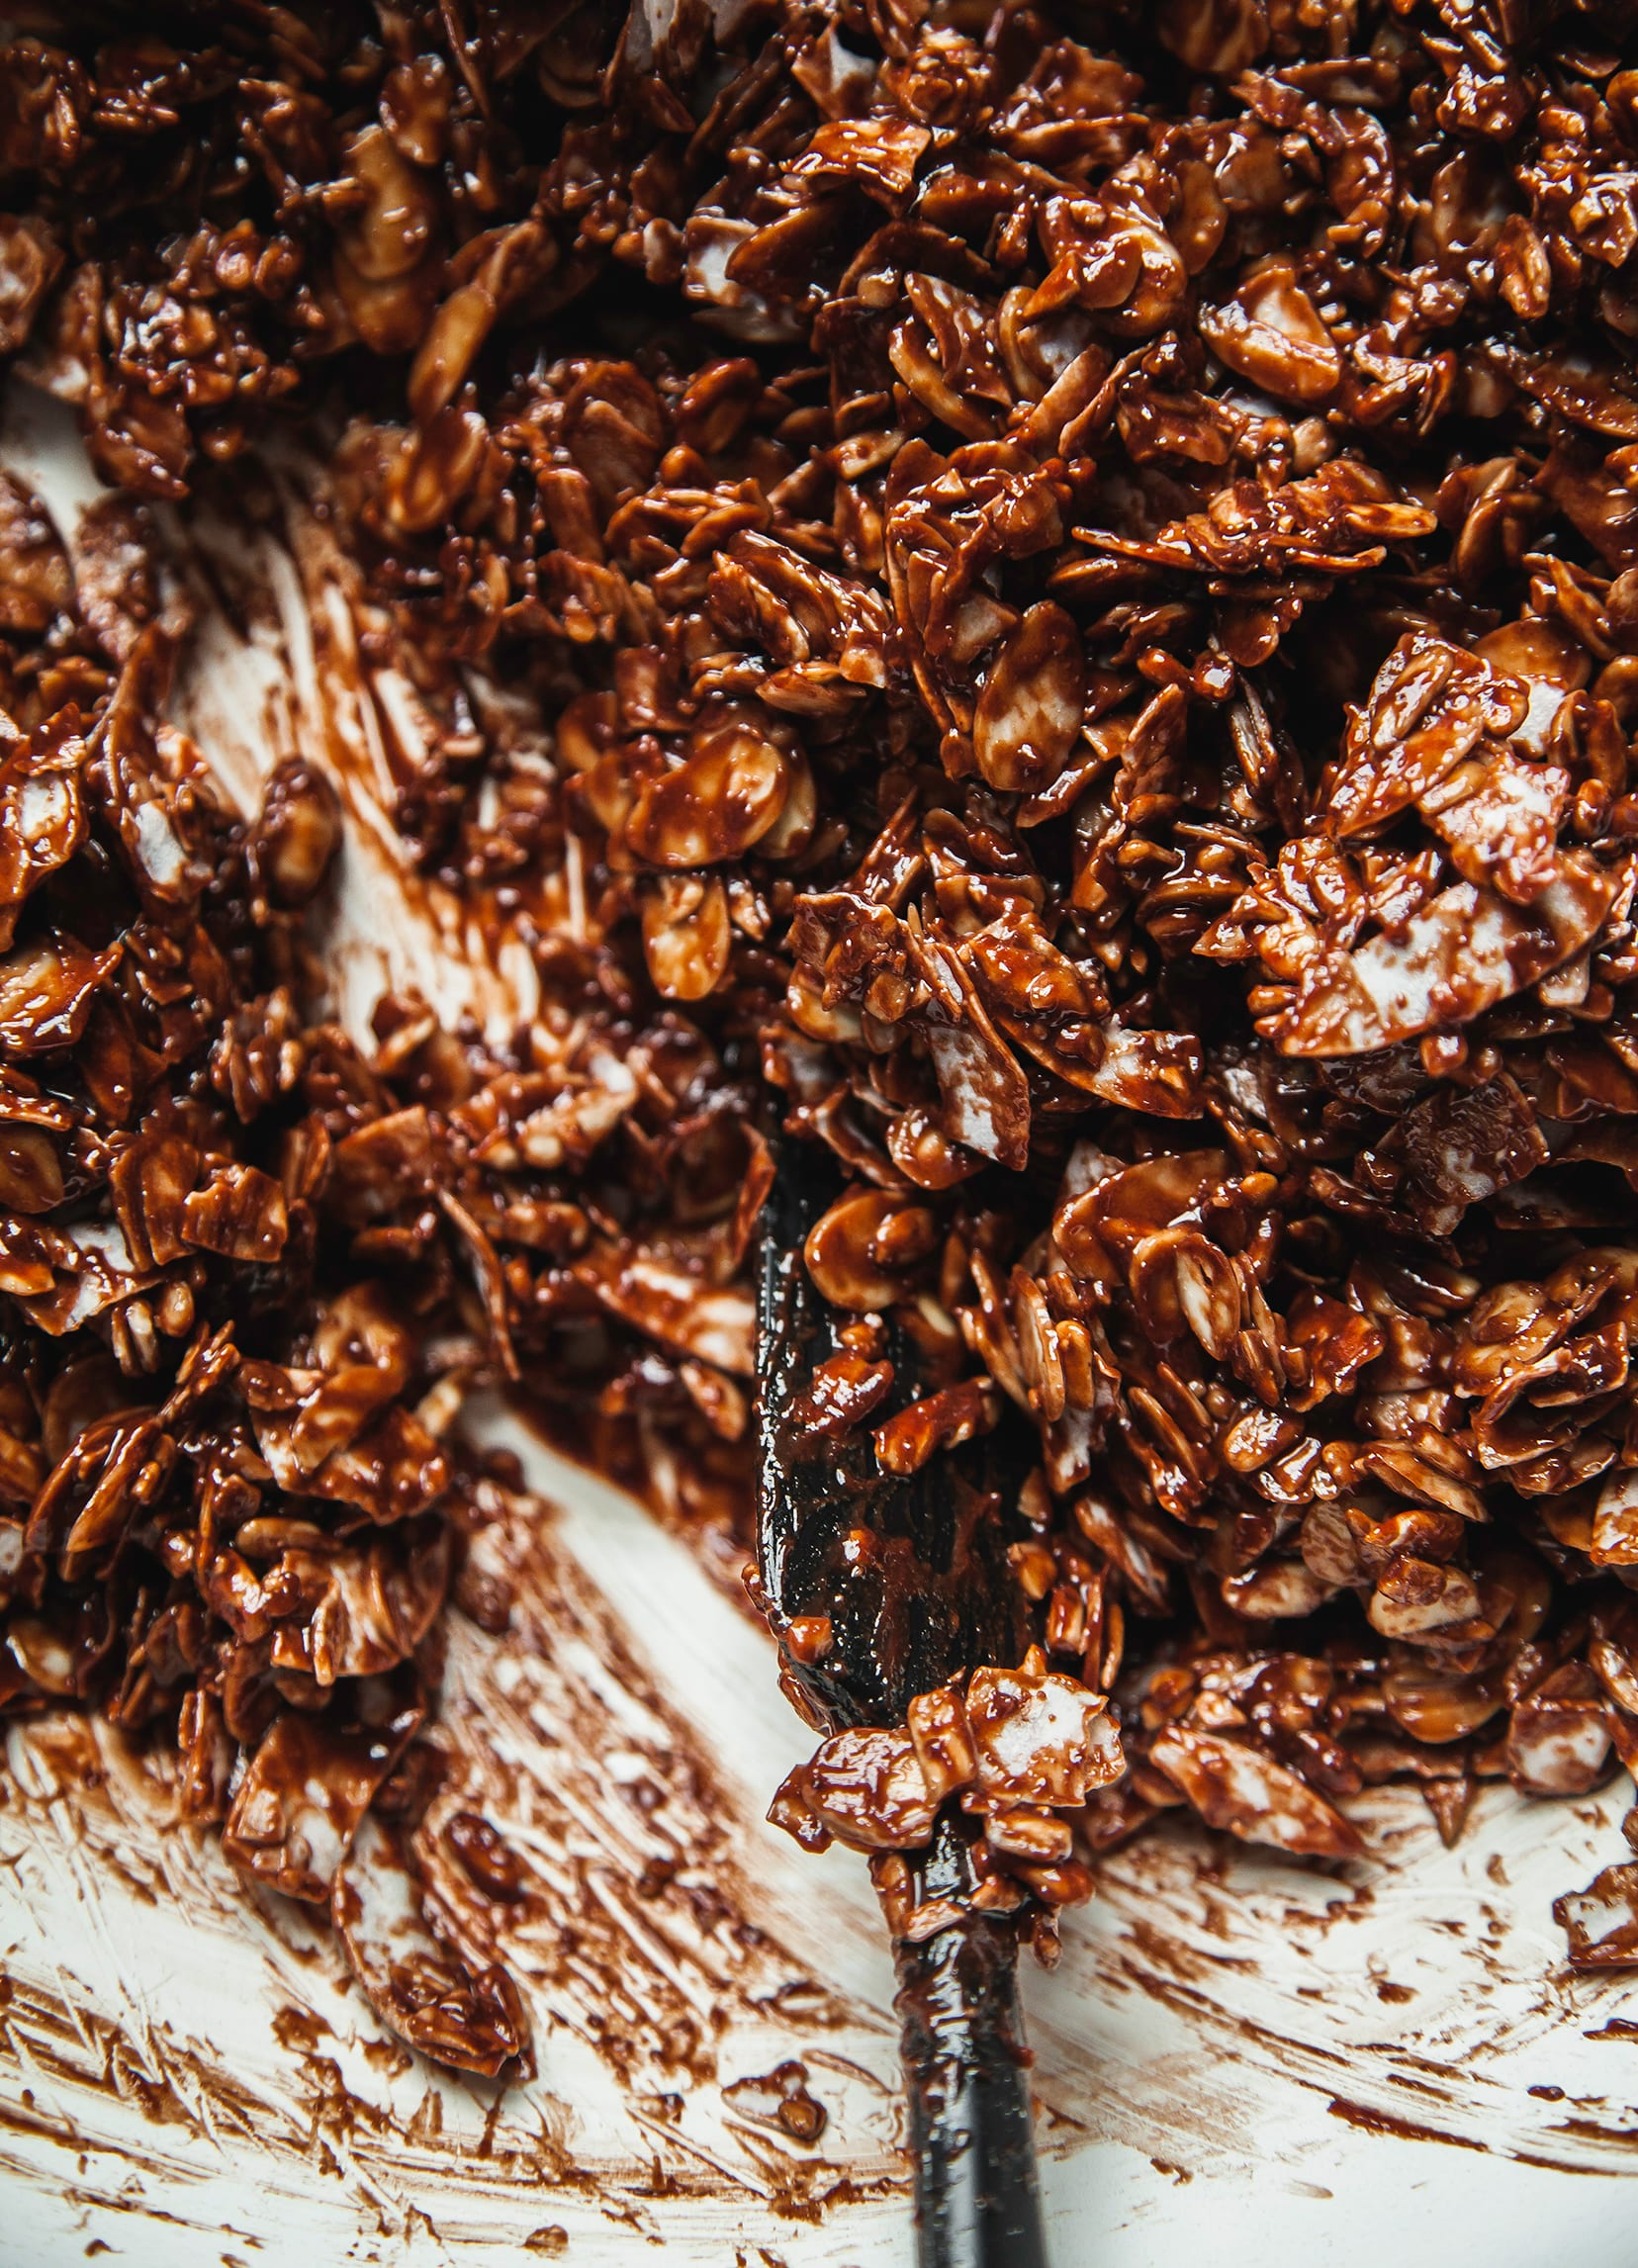 An overhead shot of chocolate sea salt granola being mixed together before baking.